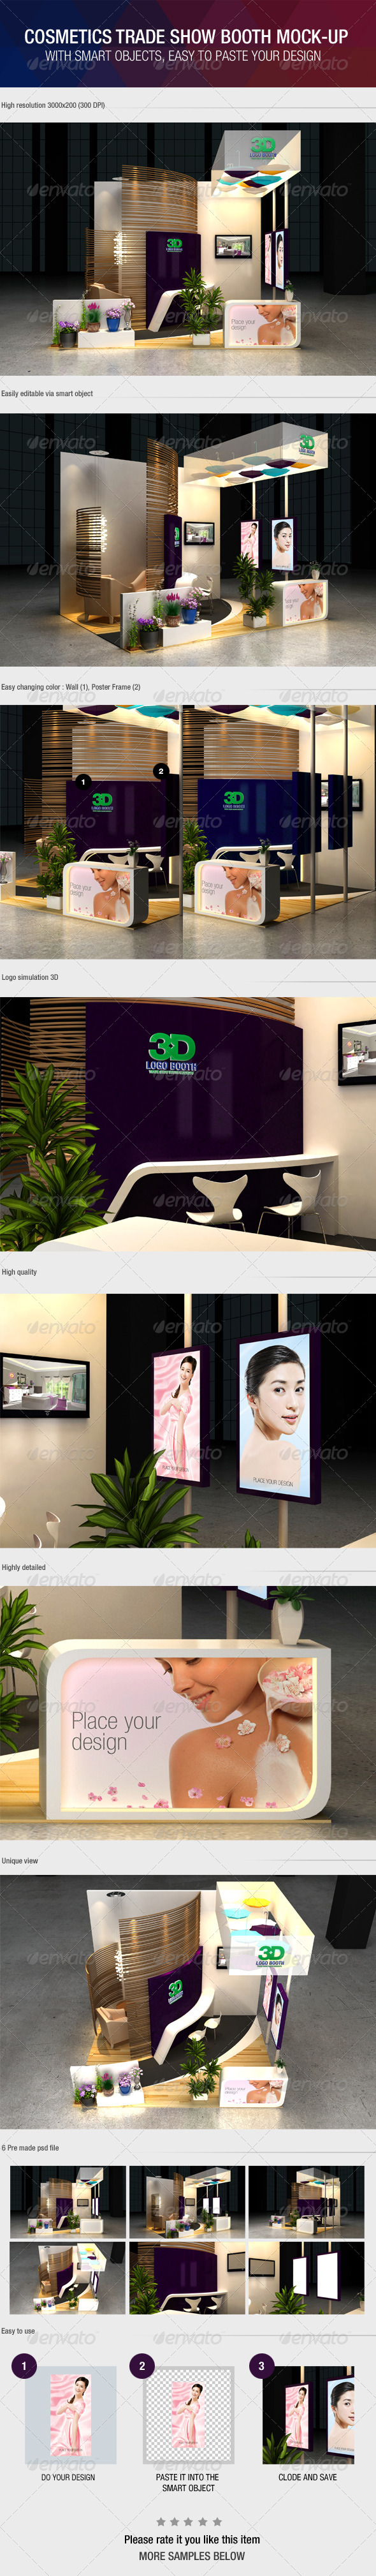 Exhibition Booth Mock Up : Cosmetics exhibition booth mock up by wutip graphicriver